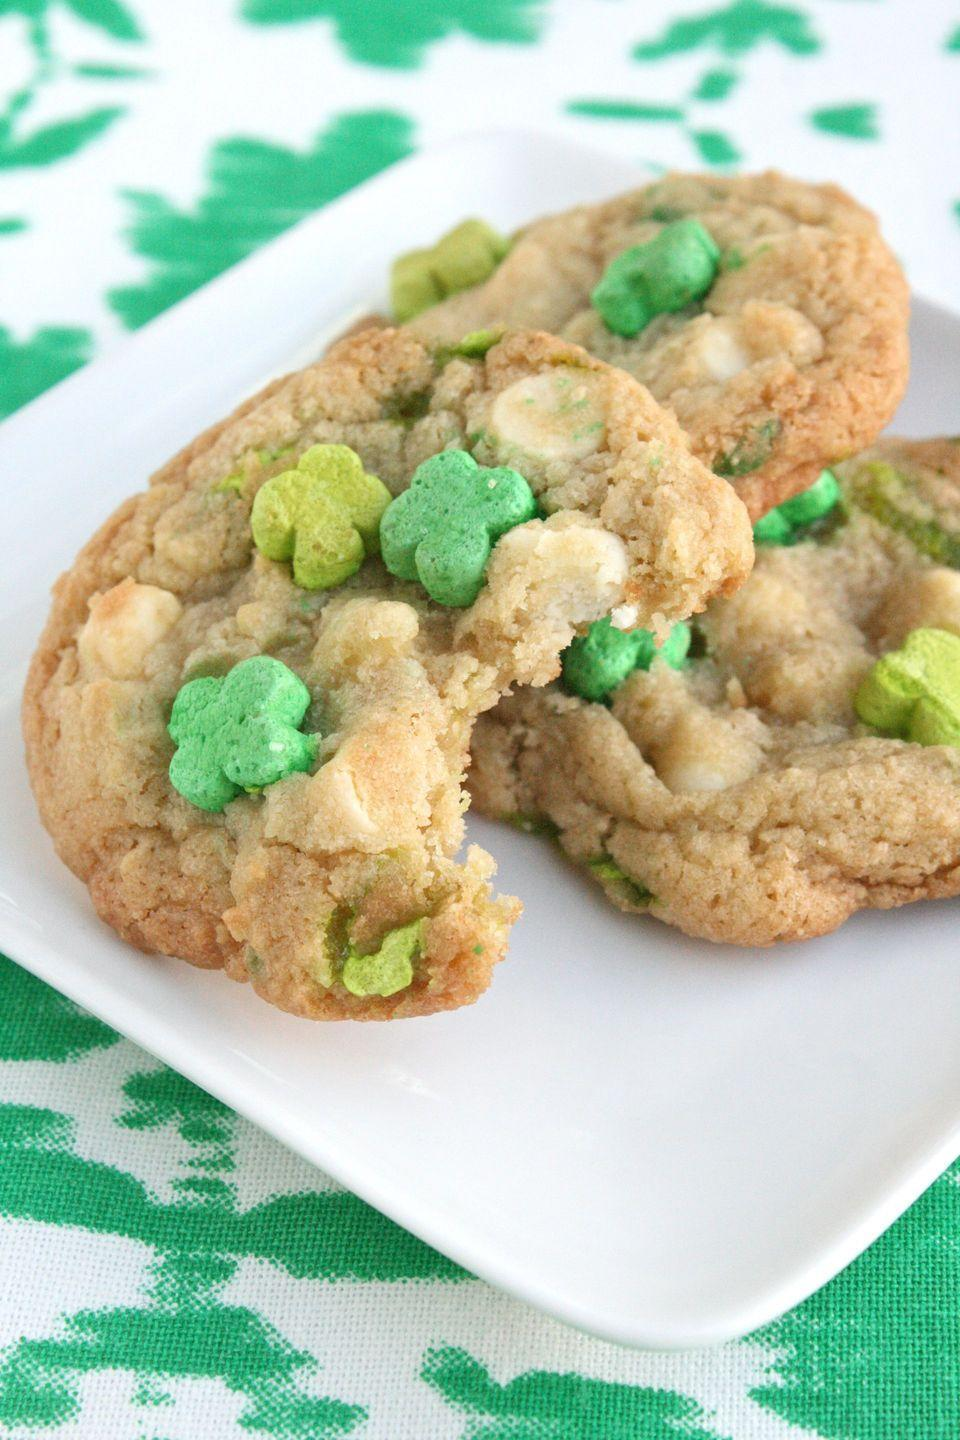 "<p>If there's cereal in these cookies that means we can eat them for breakfast, right?</p><p><a href=""https://www.goodhousekeeping.com/food-recipes/a16405/lucky-charms-cookies-recipe-ghk0314/"" rel=""nofollow noopener"" target=""_blank"" data-ylk=""slk:Get the recipe for Lucky Charm Cookies »"" class=""link rapid-noclick-resp""><em>Get the recipe for Lucky Charm Cookies »</em></a></p>"